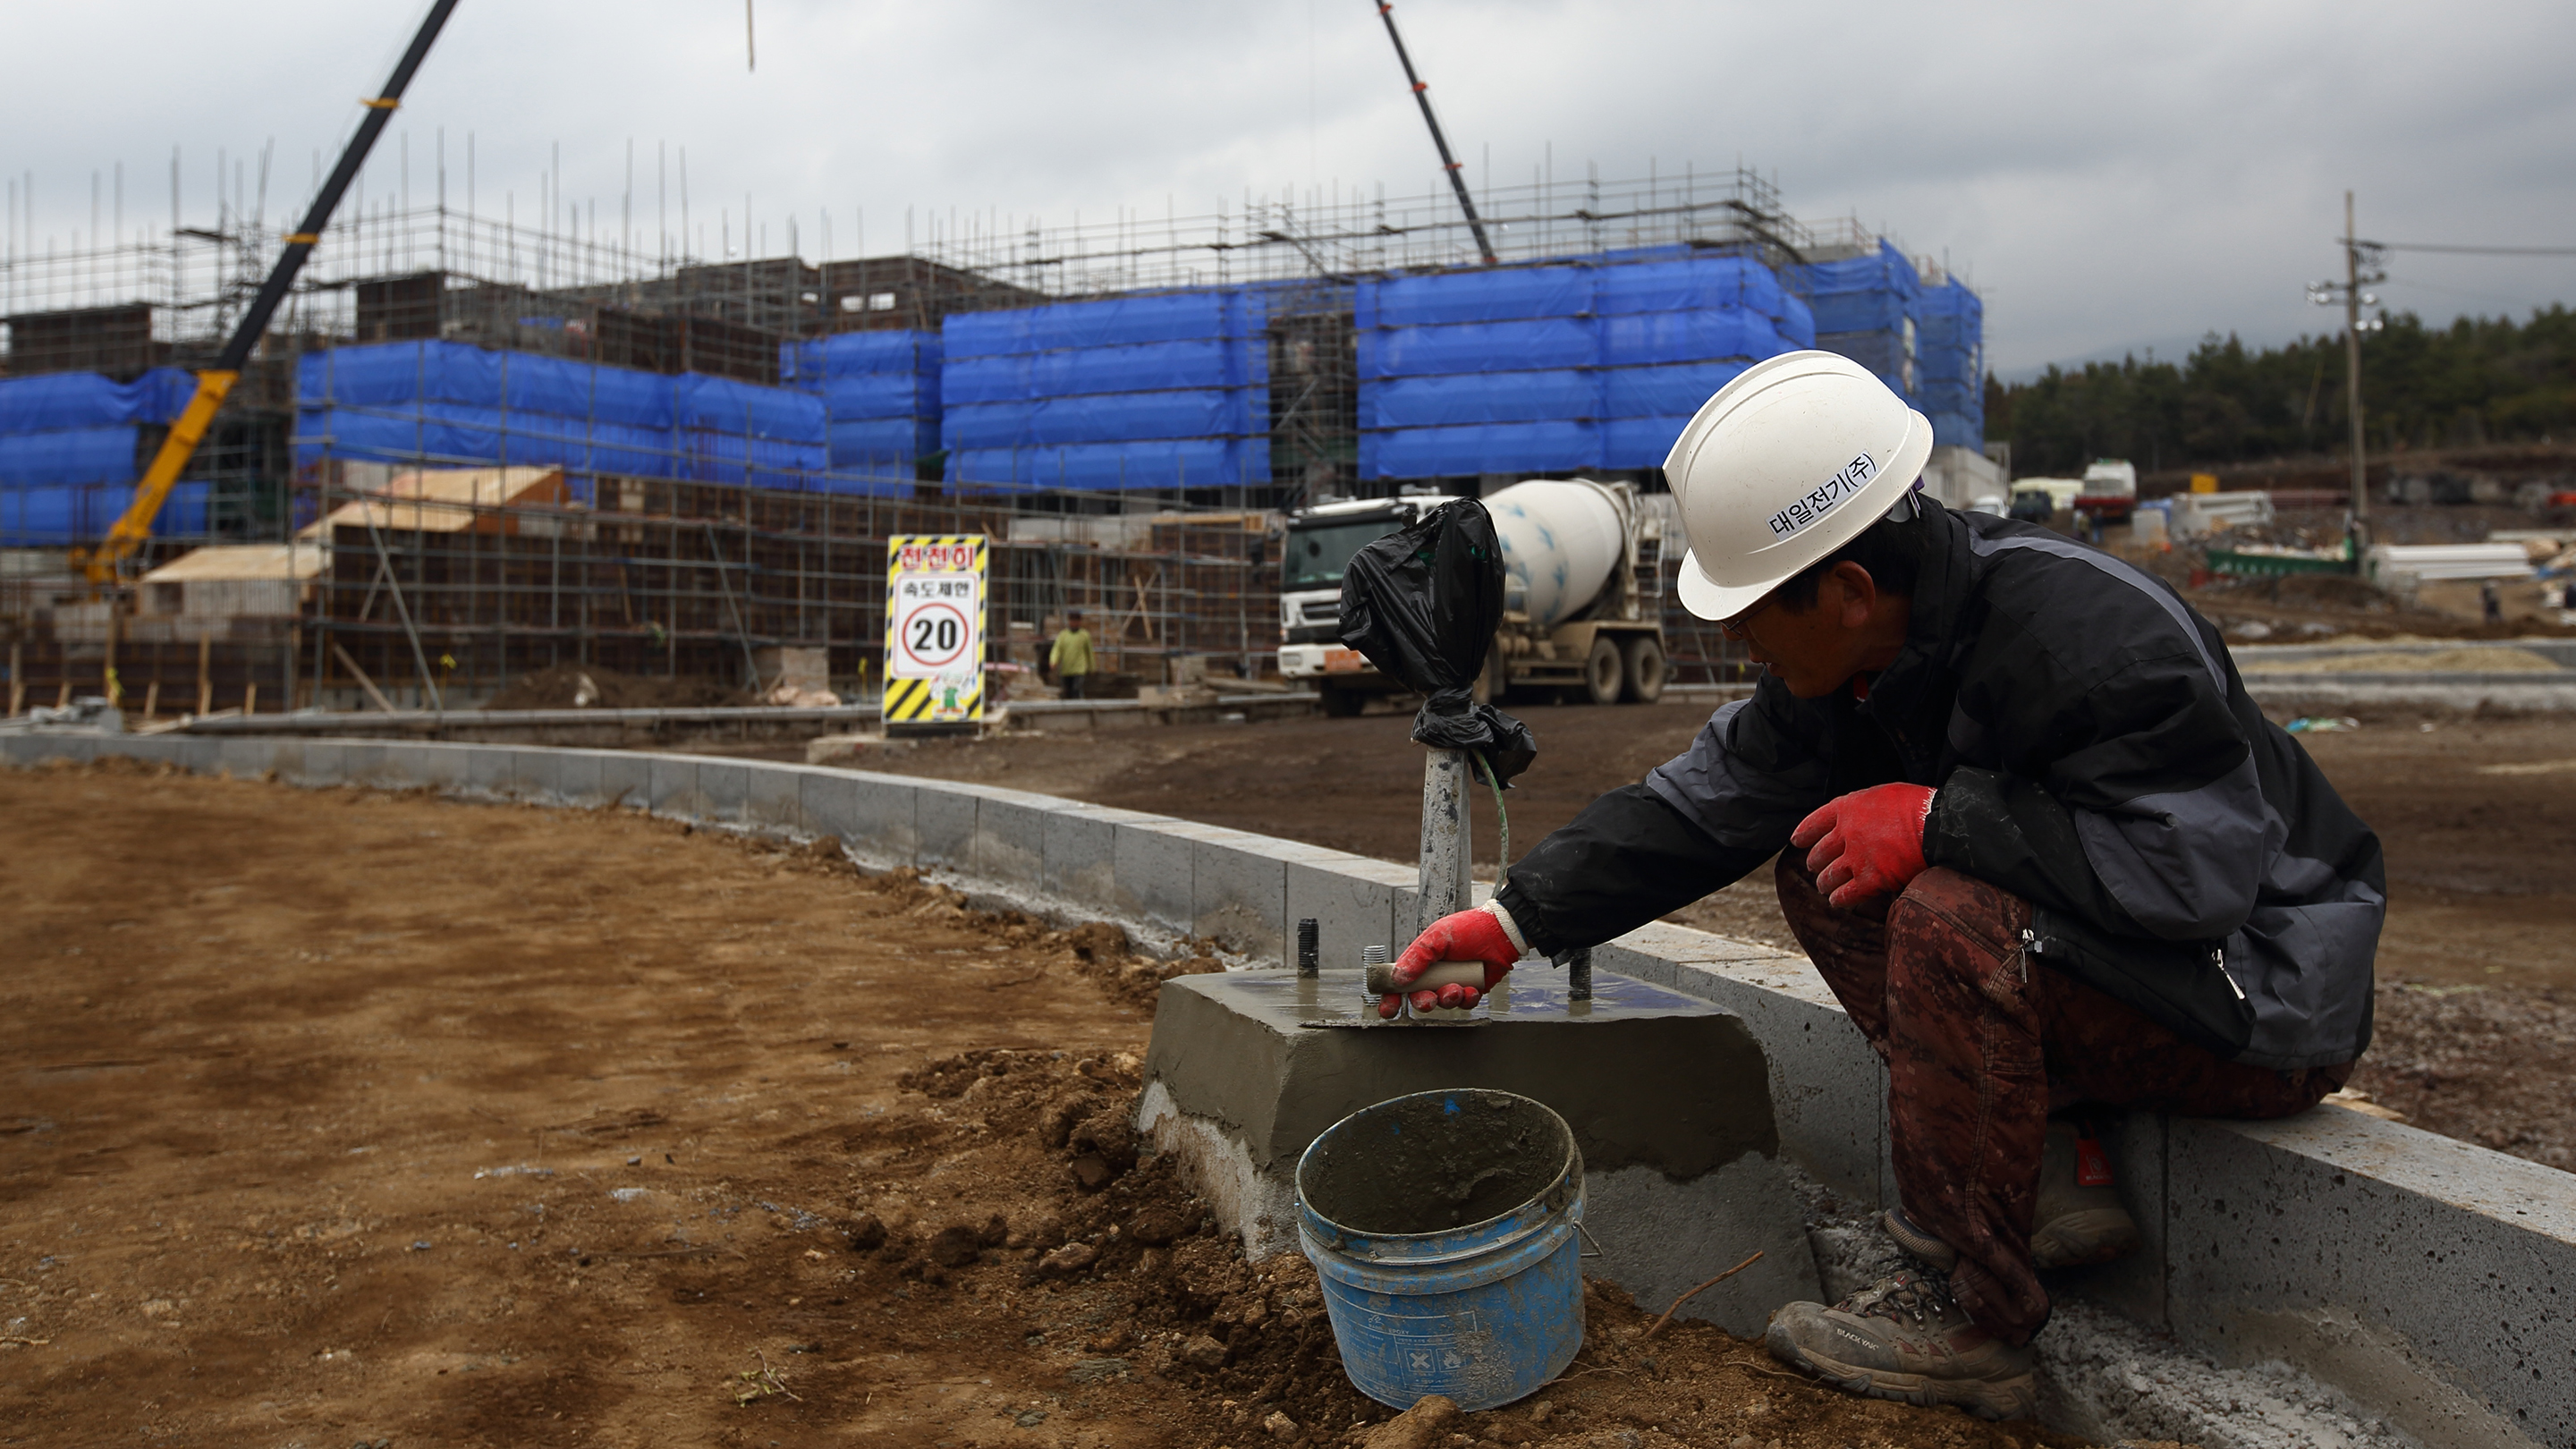 Inside The Greenland Holding Group Co. Construction Site At Jeju Healthcare Town